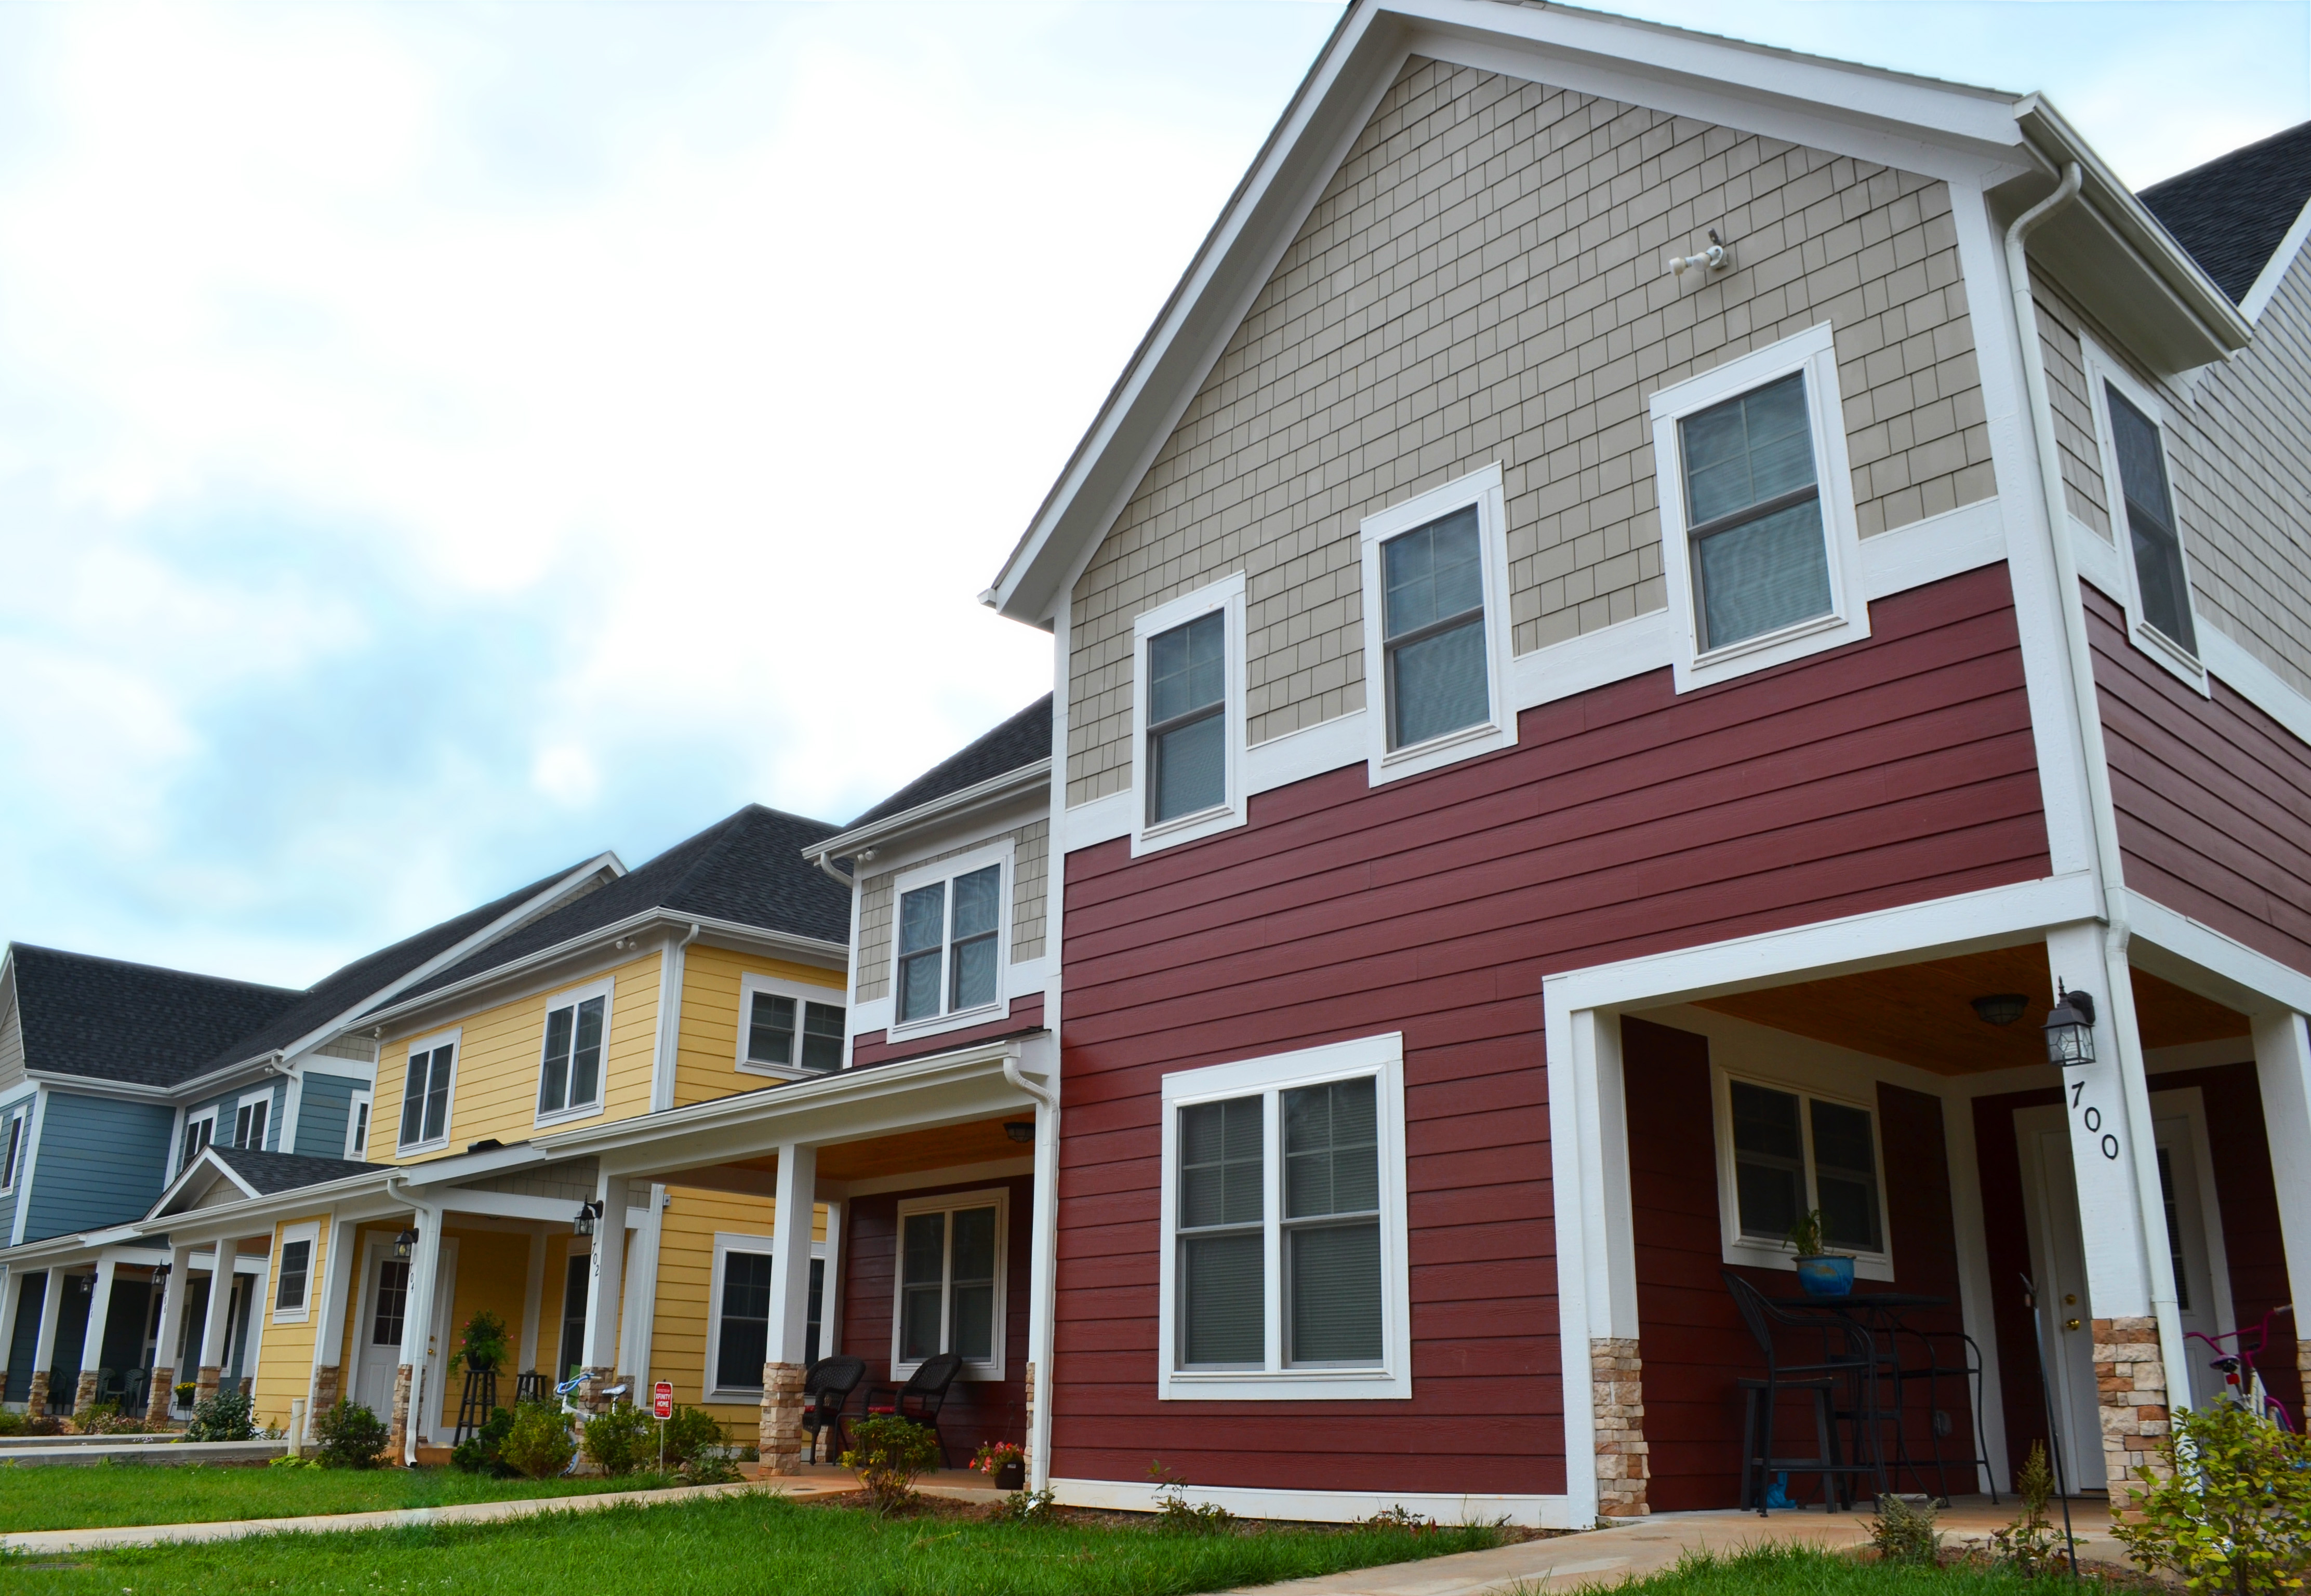 Habitat homes in Belmont Cottages